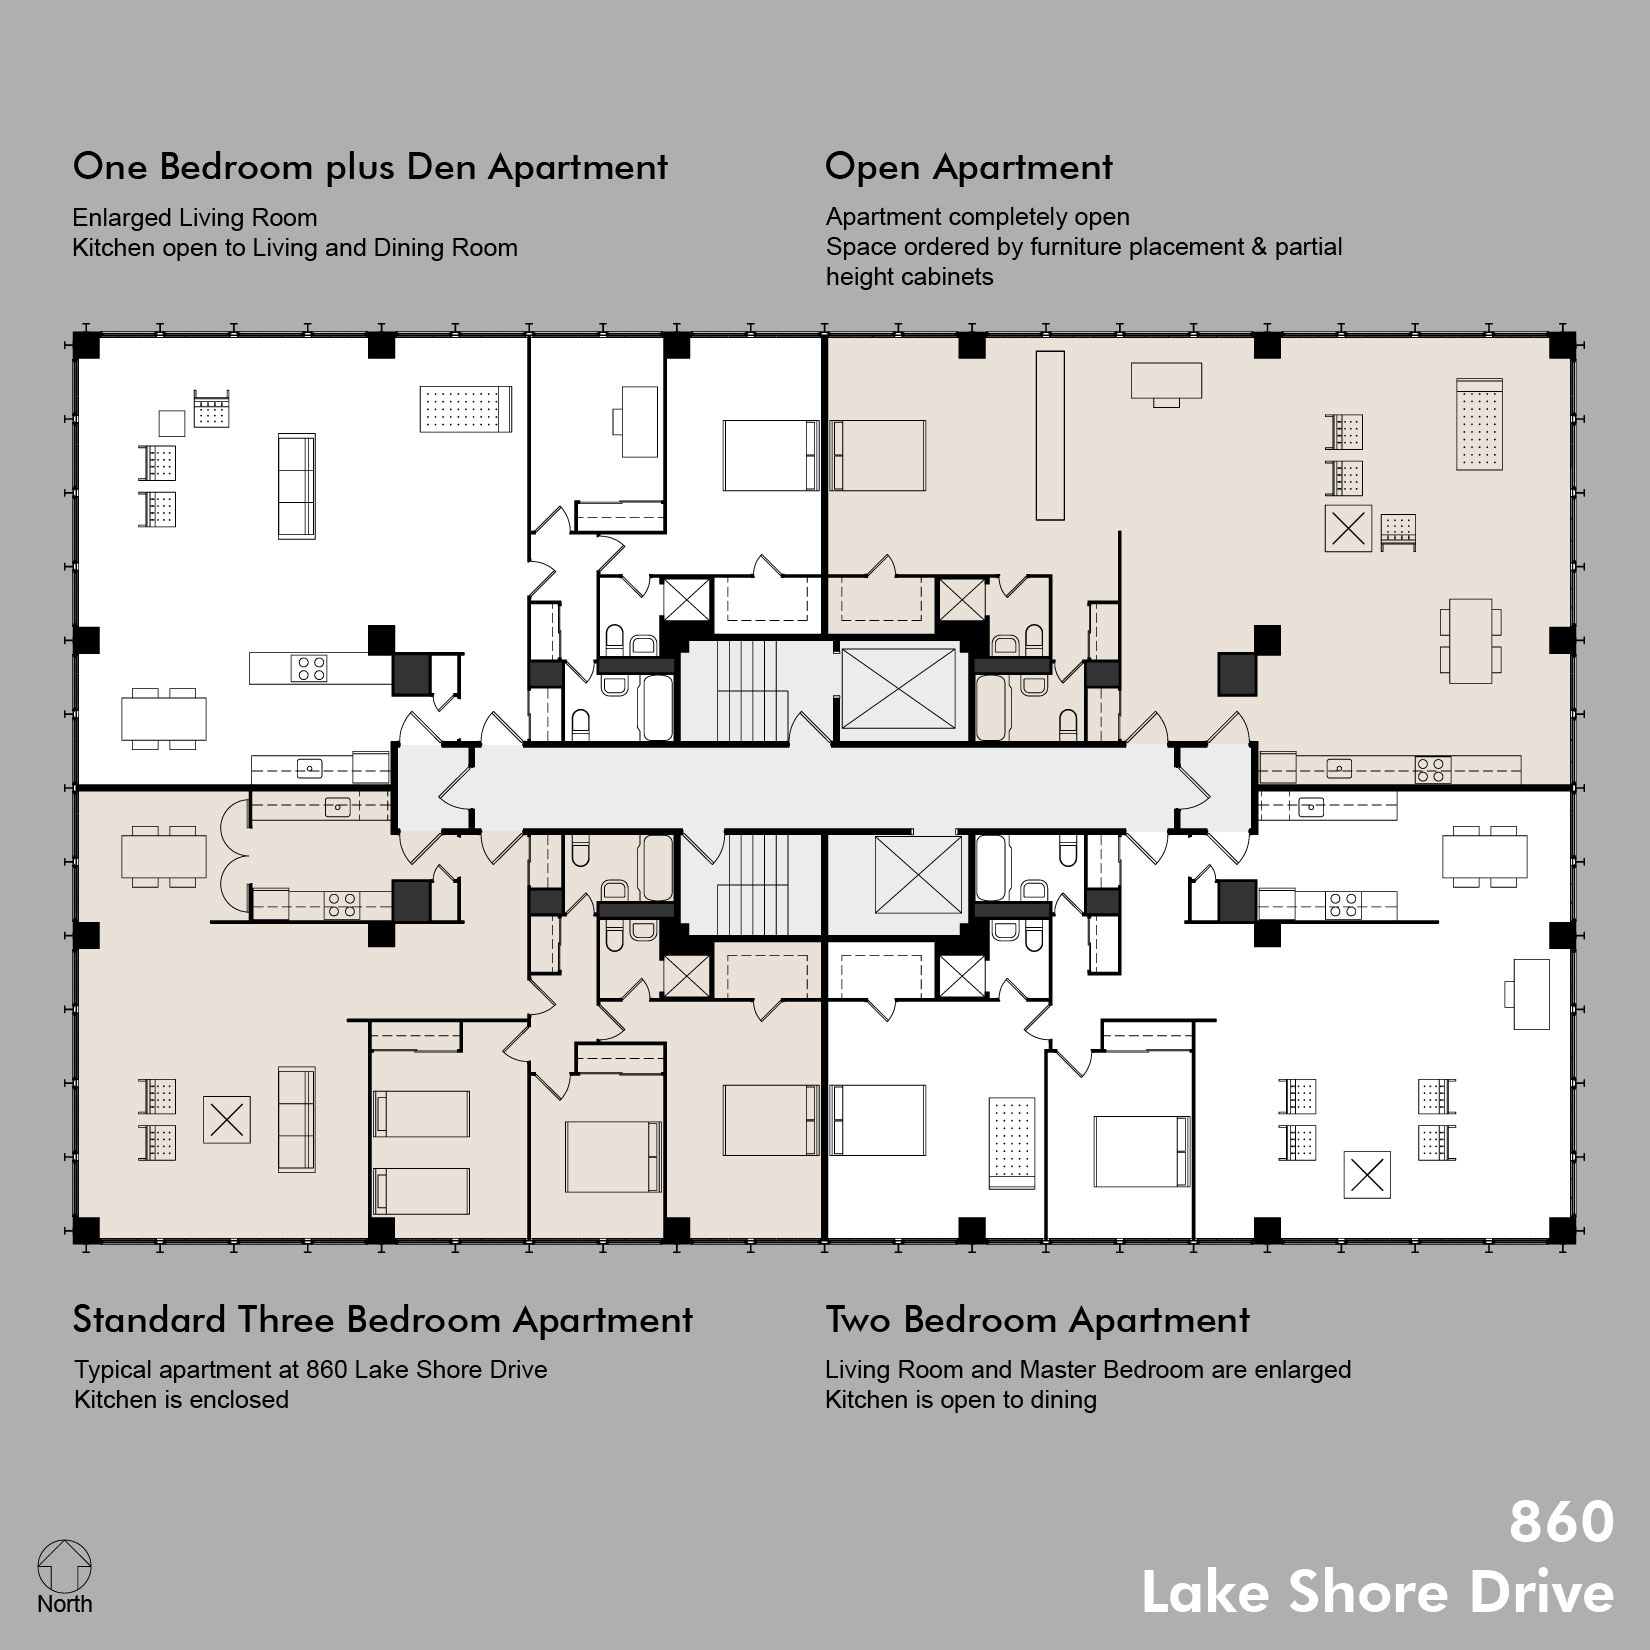 Apartment Building Architectural Plans 860_floor_plans_including_standard_apt